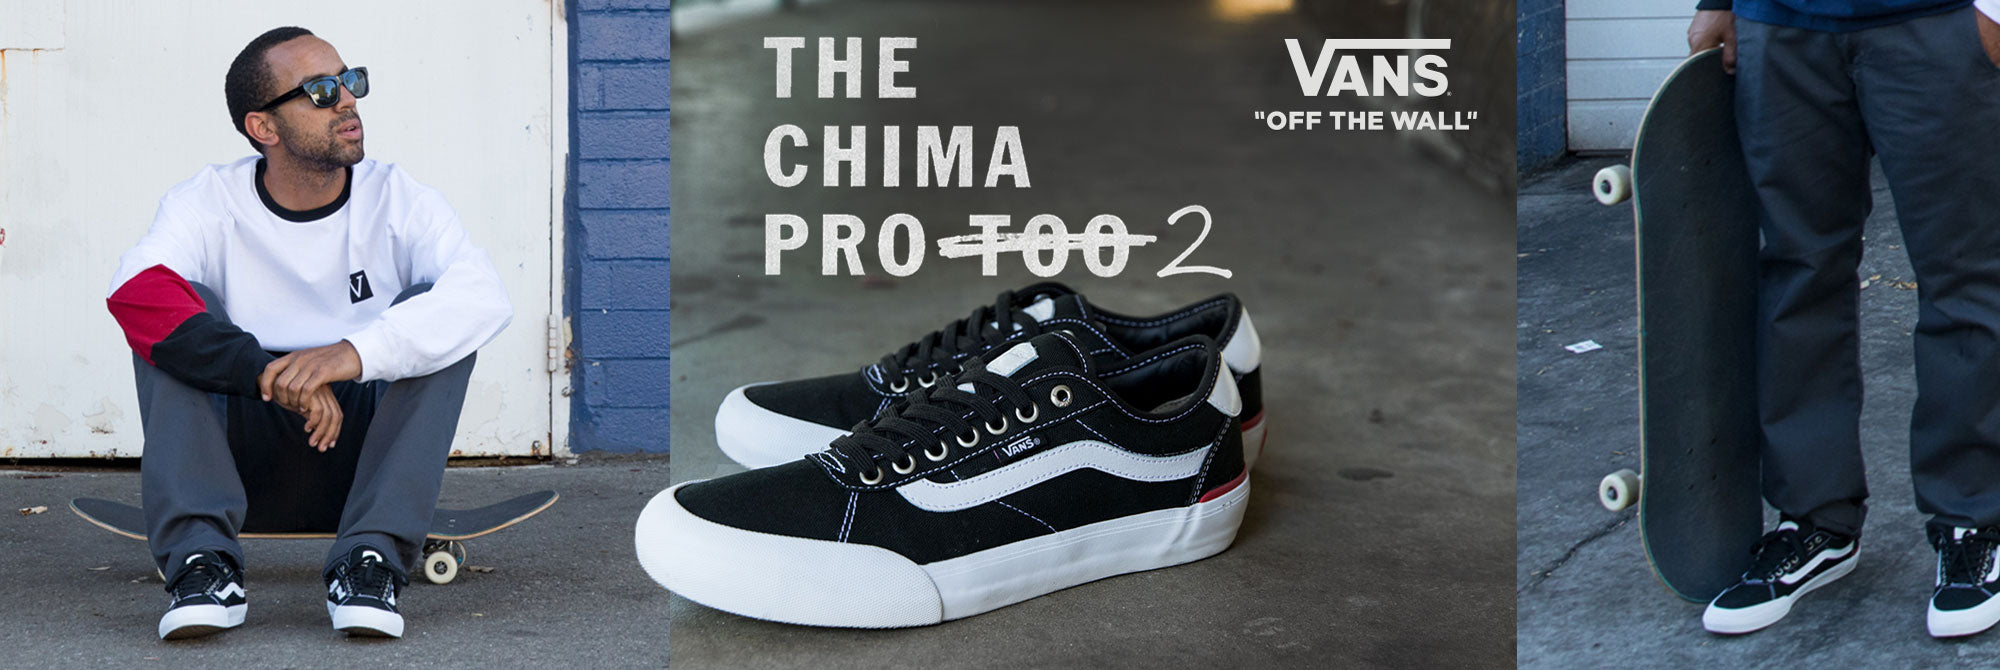 The Redesigned Vans Pro Shoe For Chima Ferguson